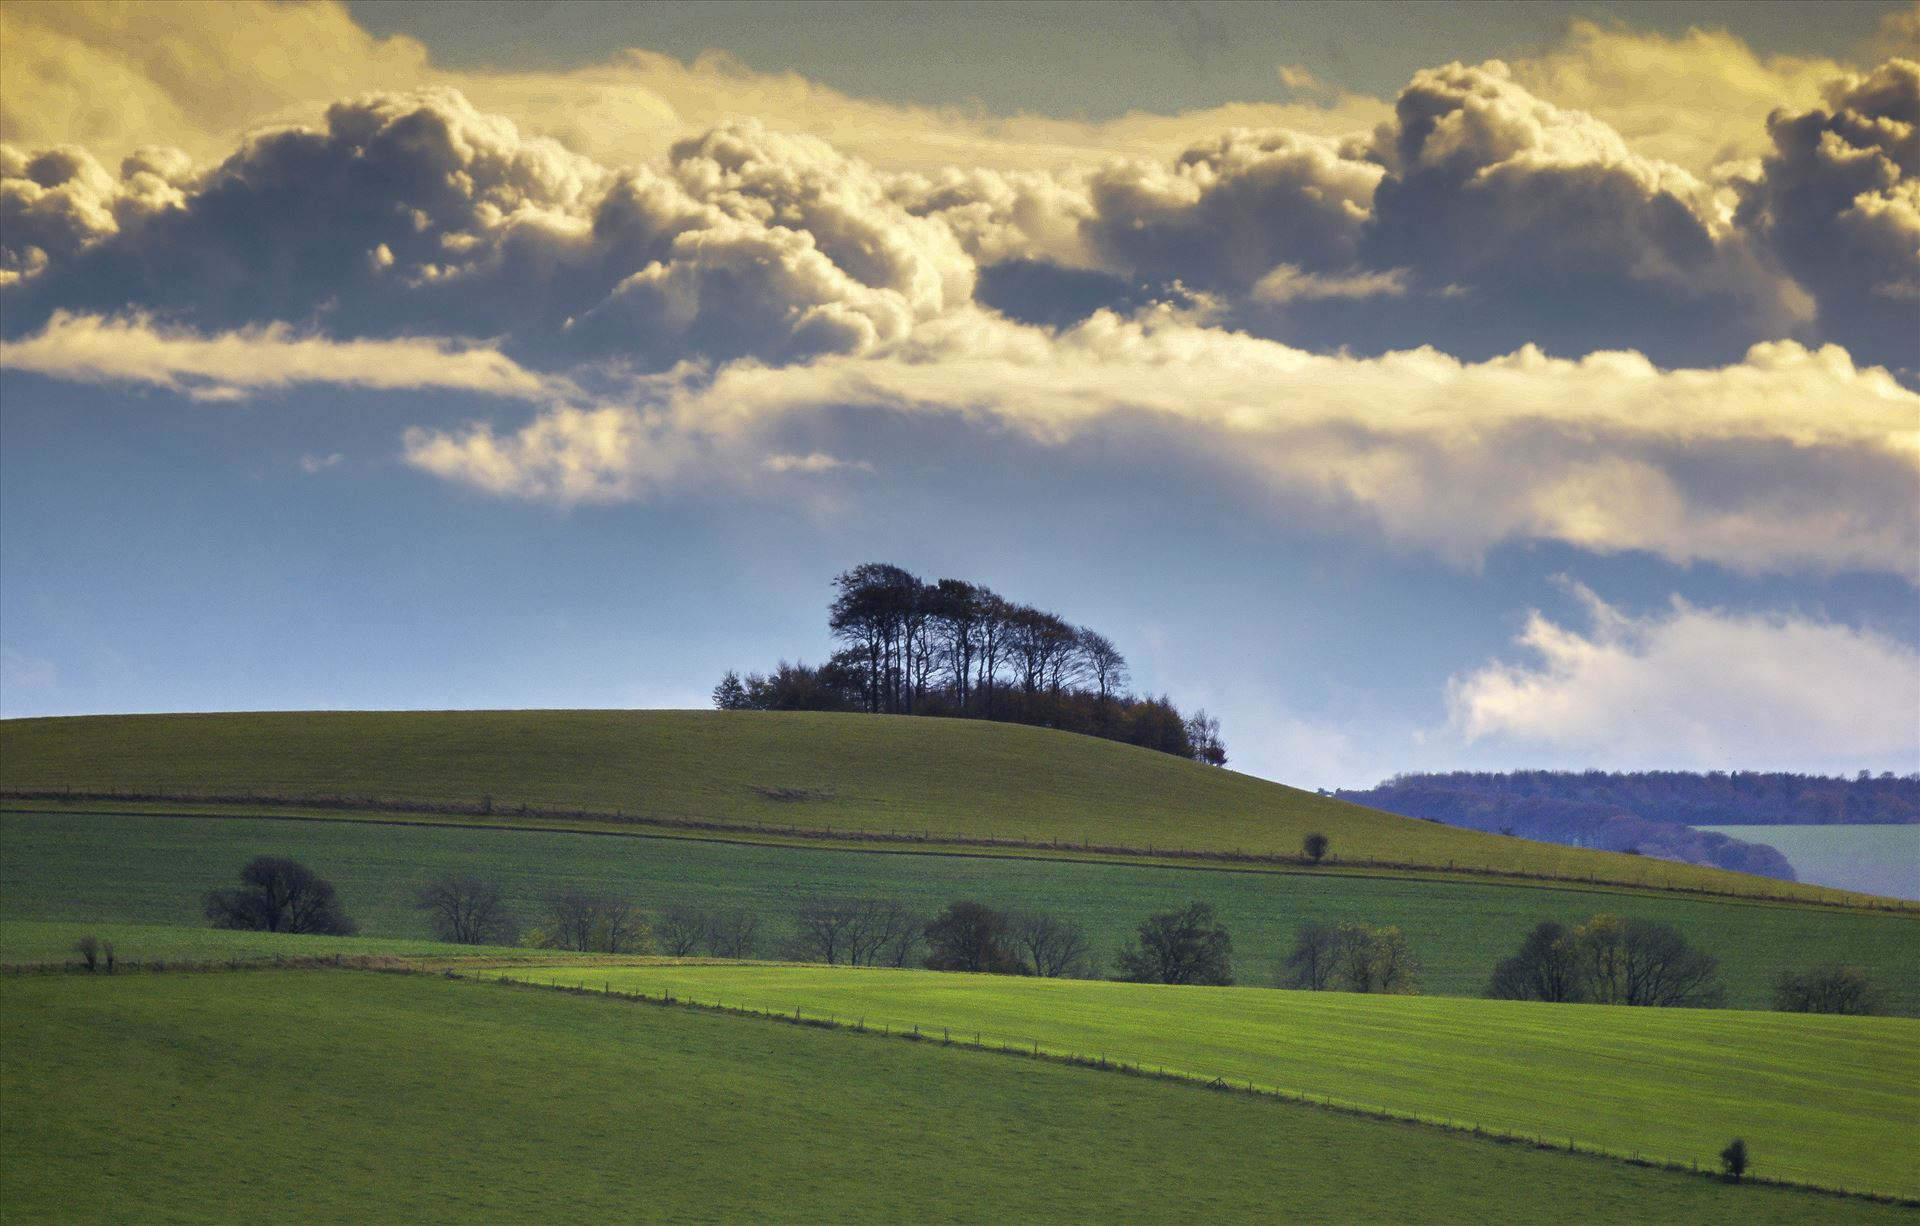 The HeavensThis image was shoot on location near the Marlborough Downs in Wiltshire, UK.